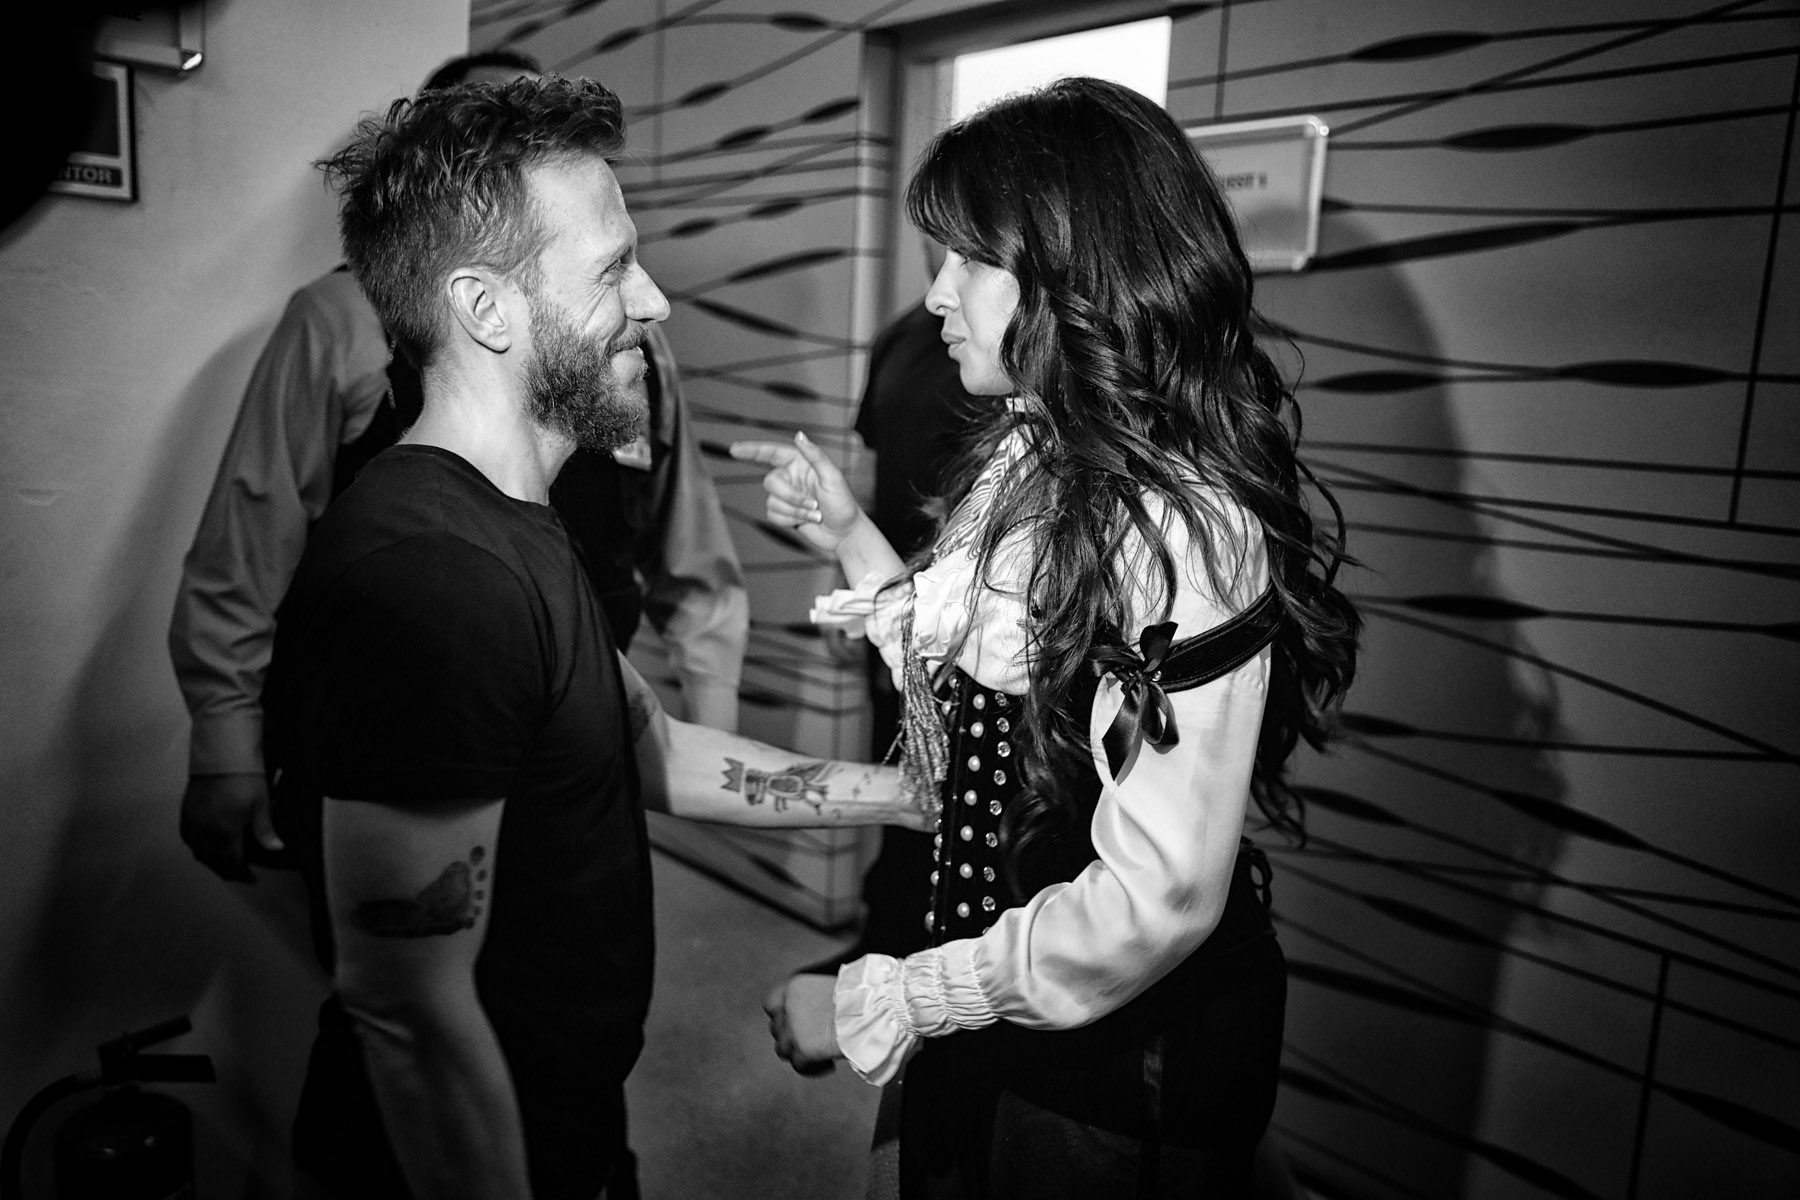 Noel Schajris and Camila Cabello backstage in Mexico by Christie Goodwin